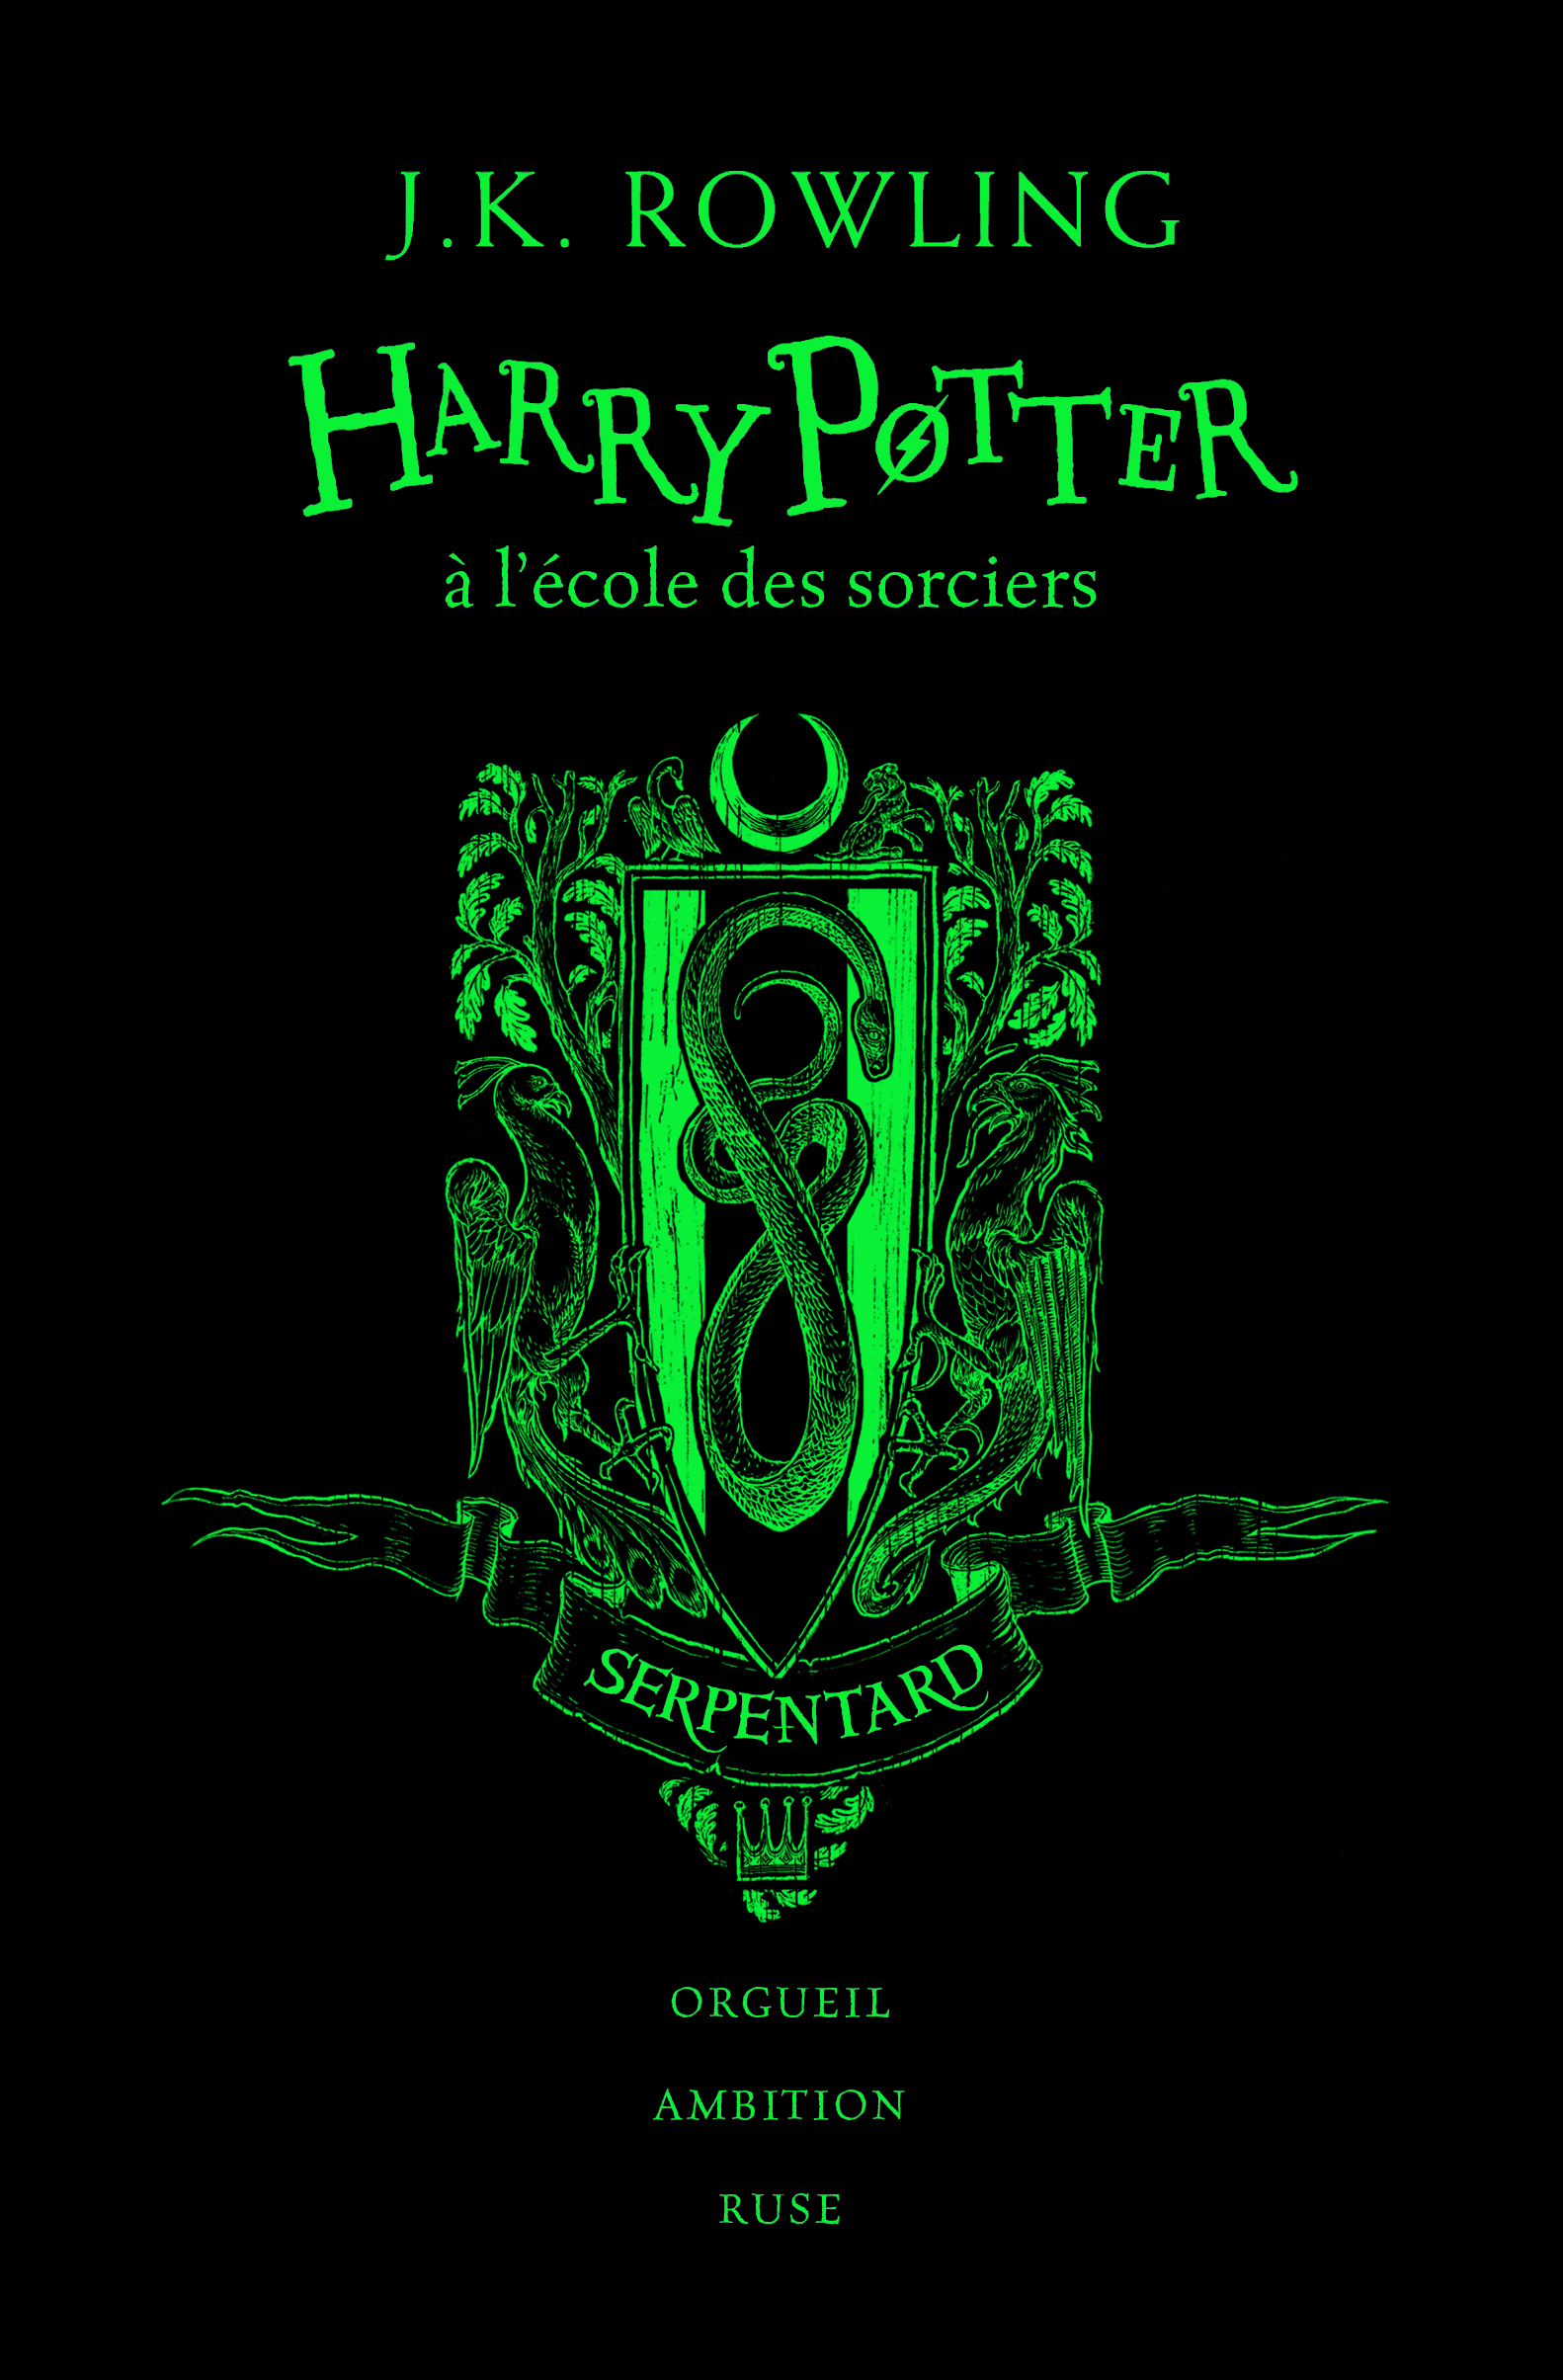 HARRY POTTER A L'ECOLE DES SORCIERS - I - SERPENTARD